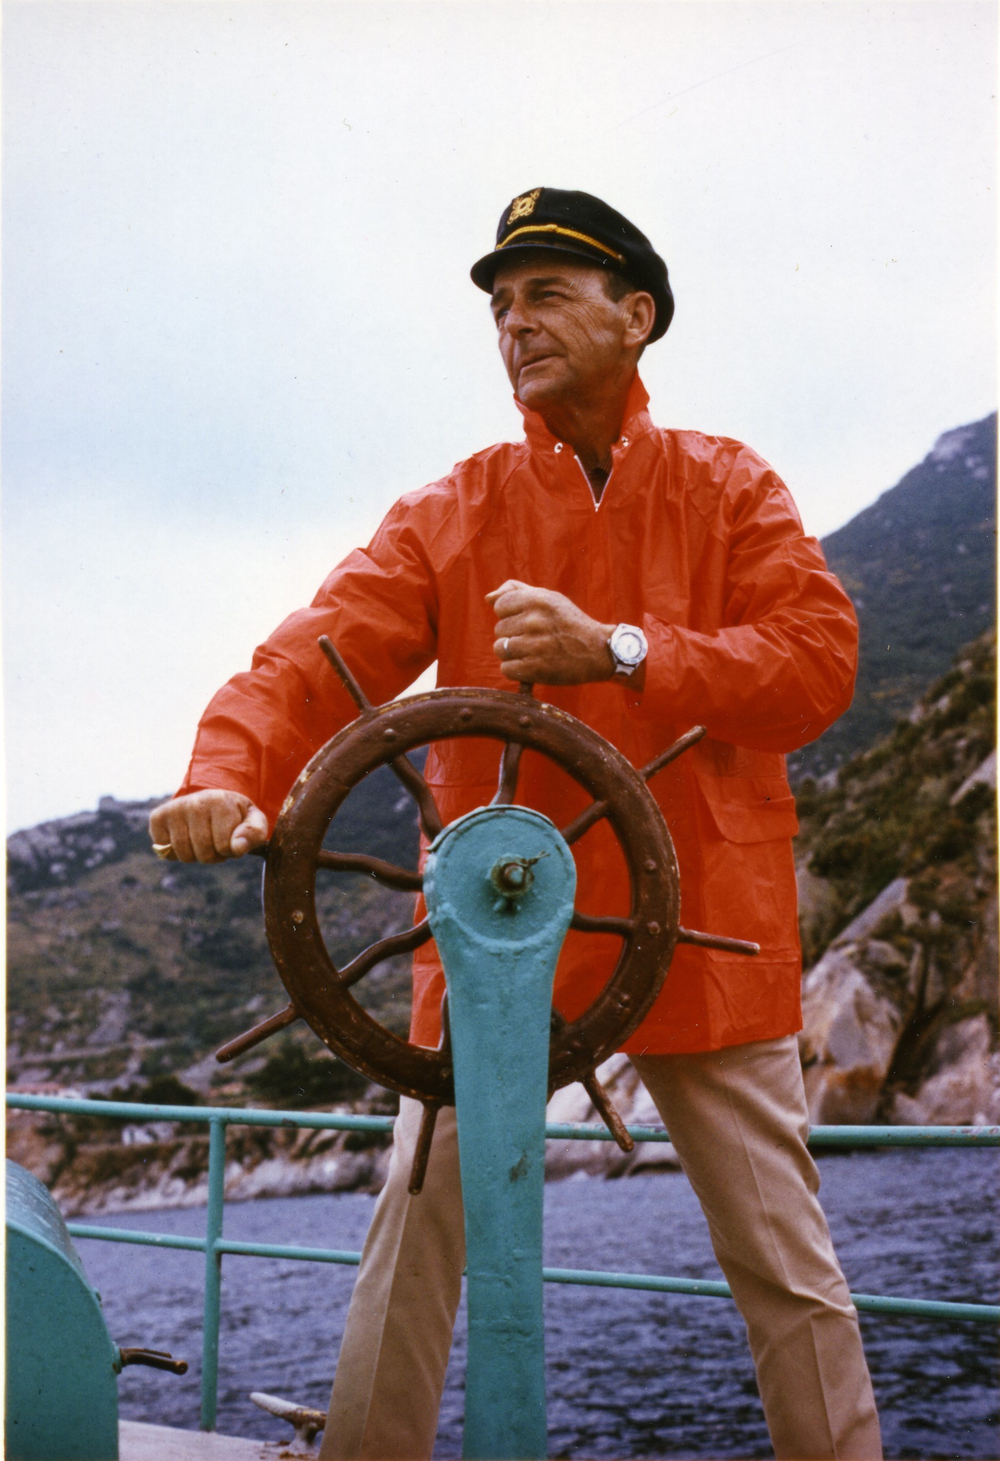 Squale founder Charles Von Buren(image courtesy of Page and Cooper)